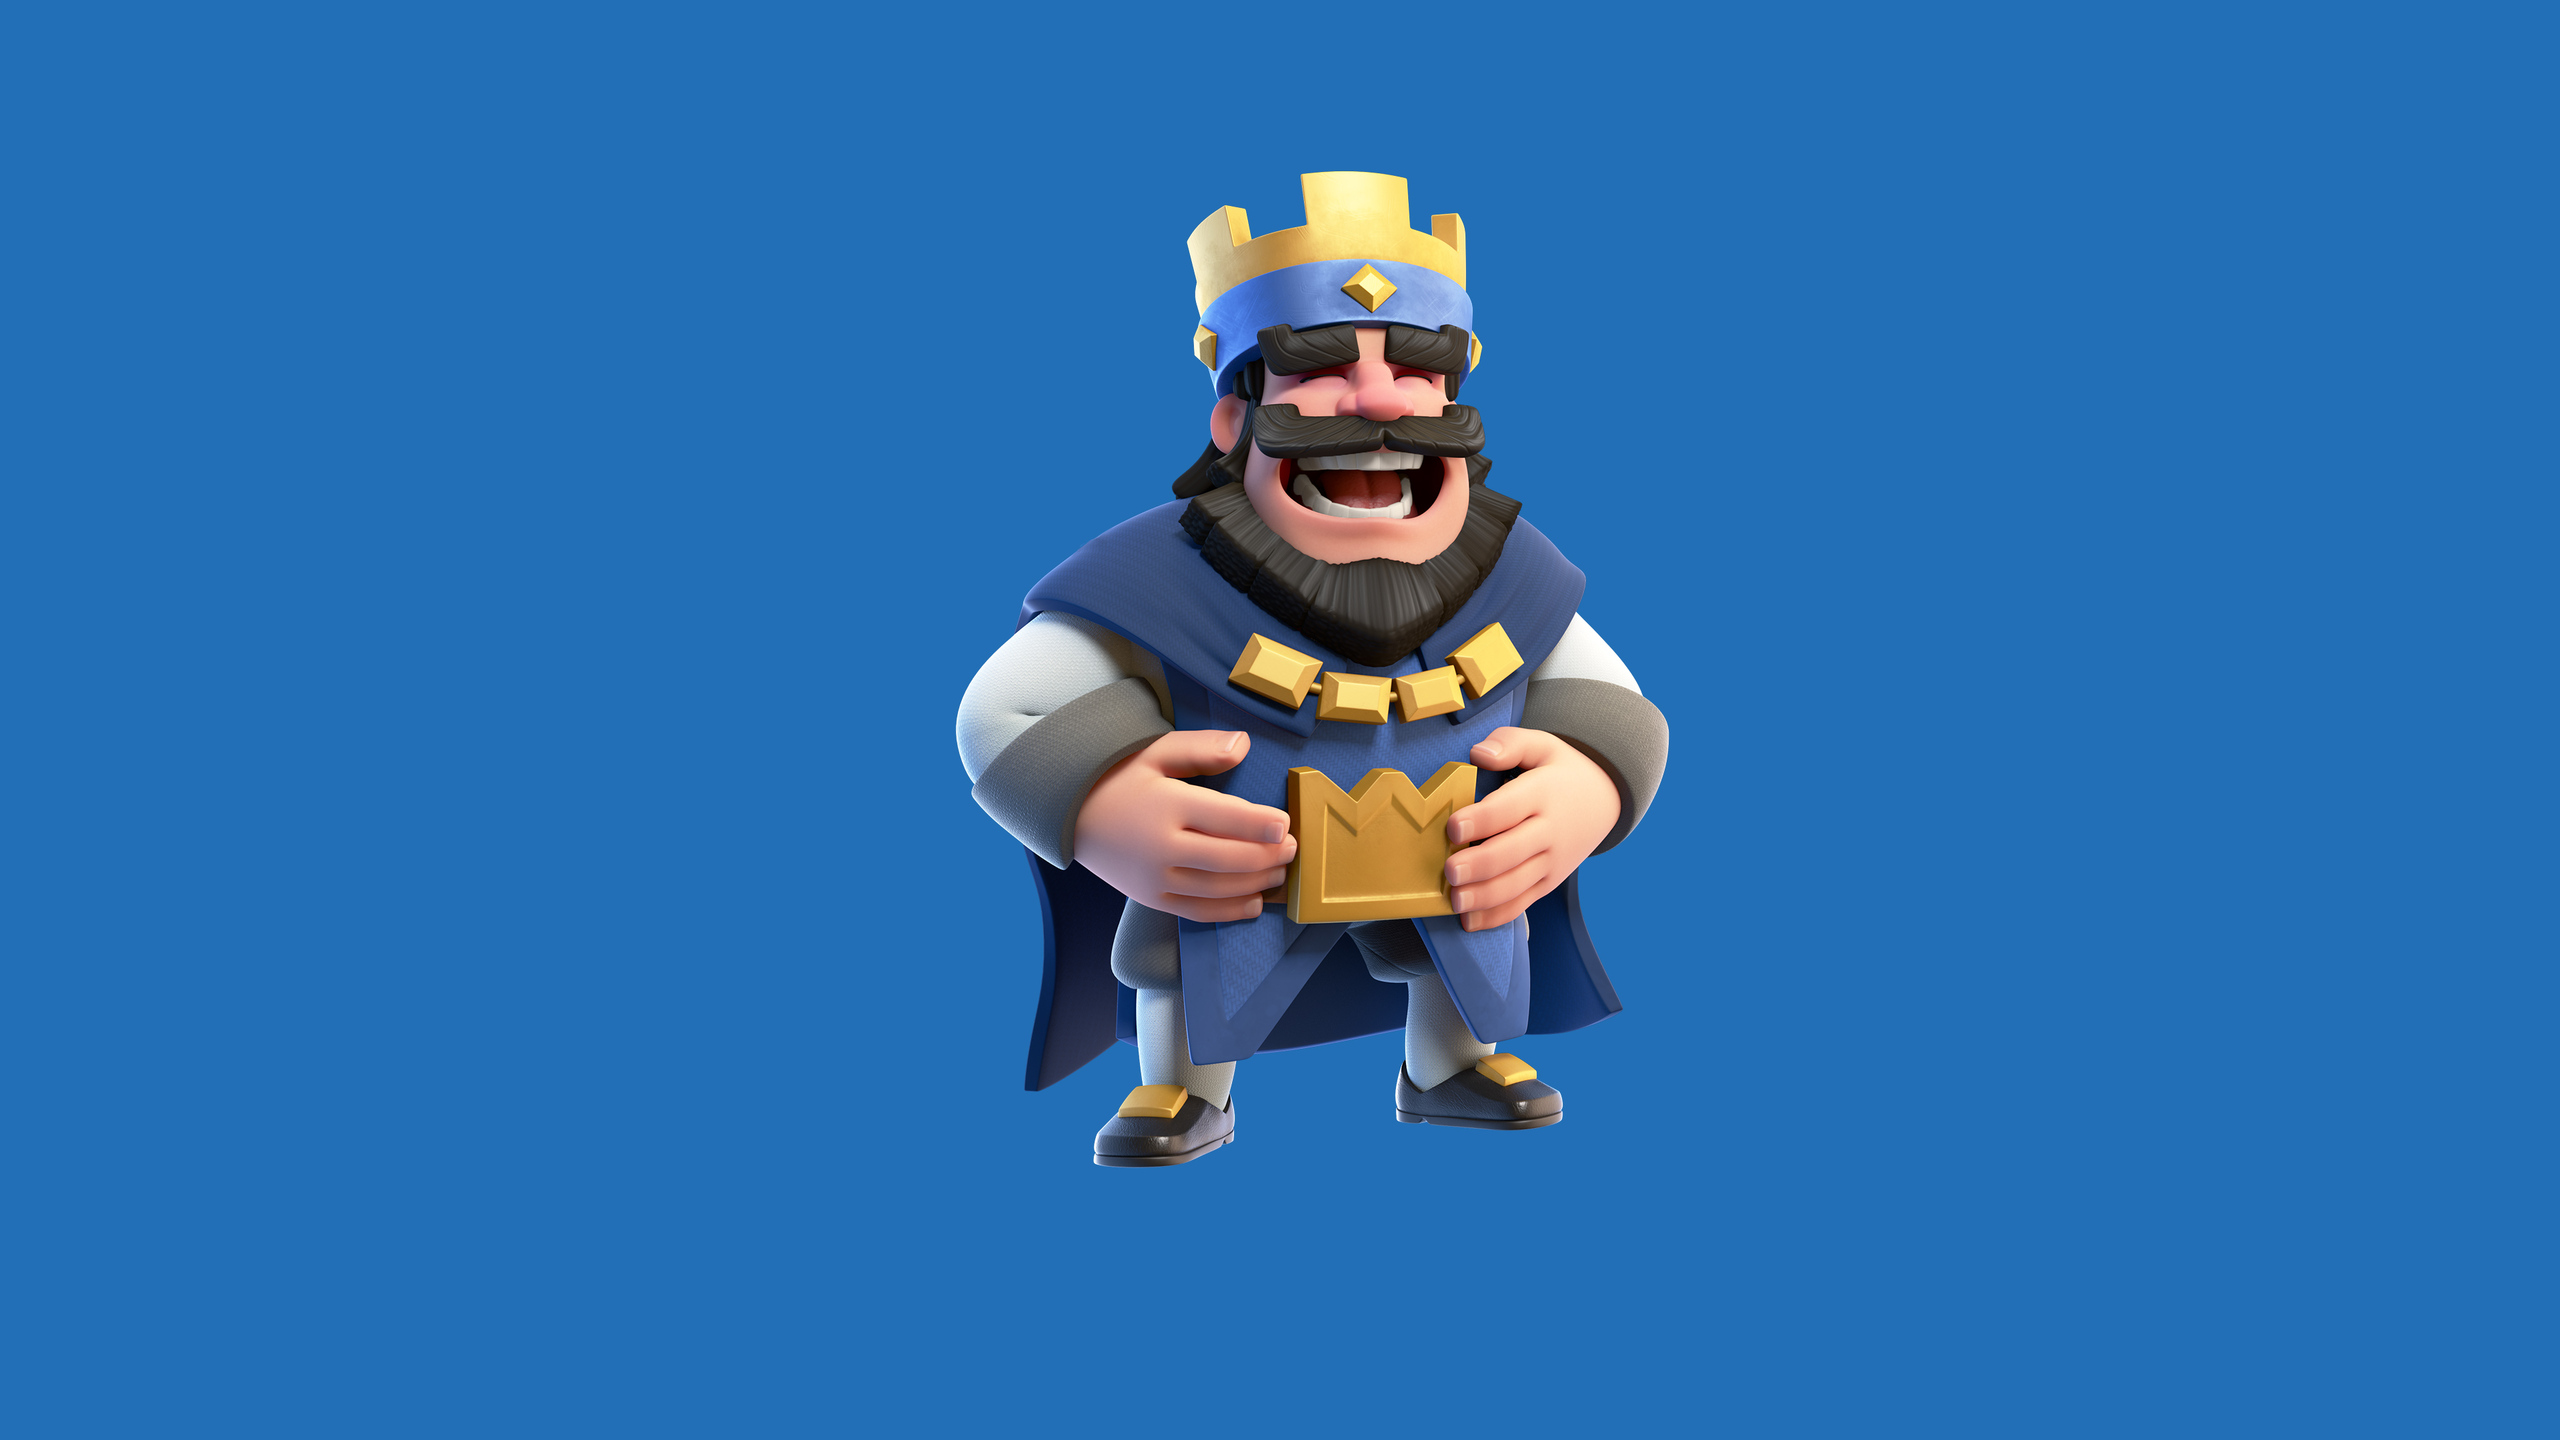 2560x1440 clash royale blue king 1440p resolution hd 4k wallpapers images backgrounds photos - Clash royale 2560x1440 ...